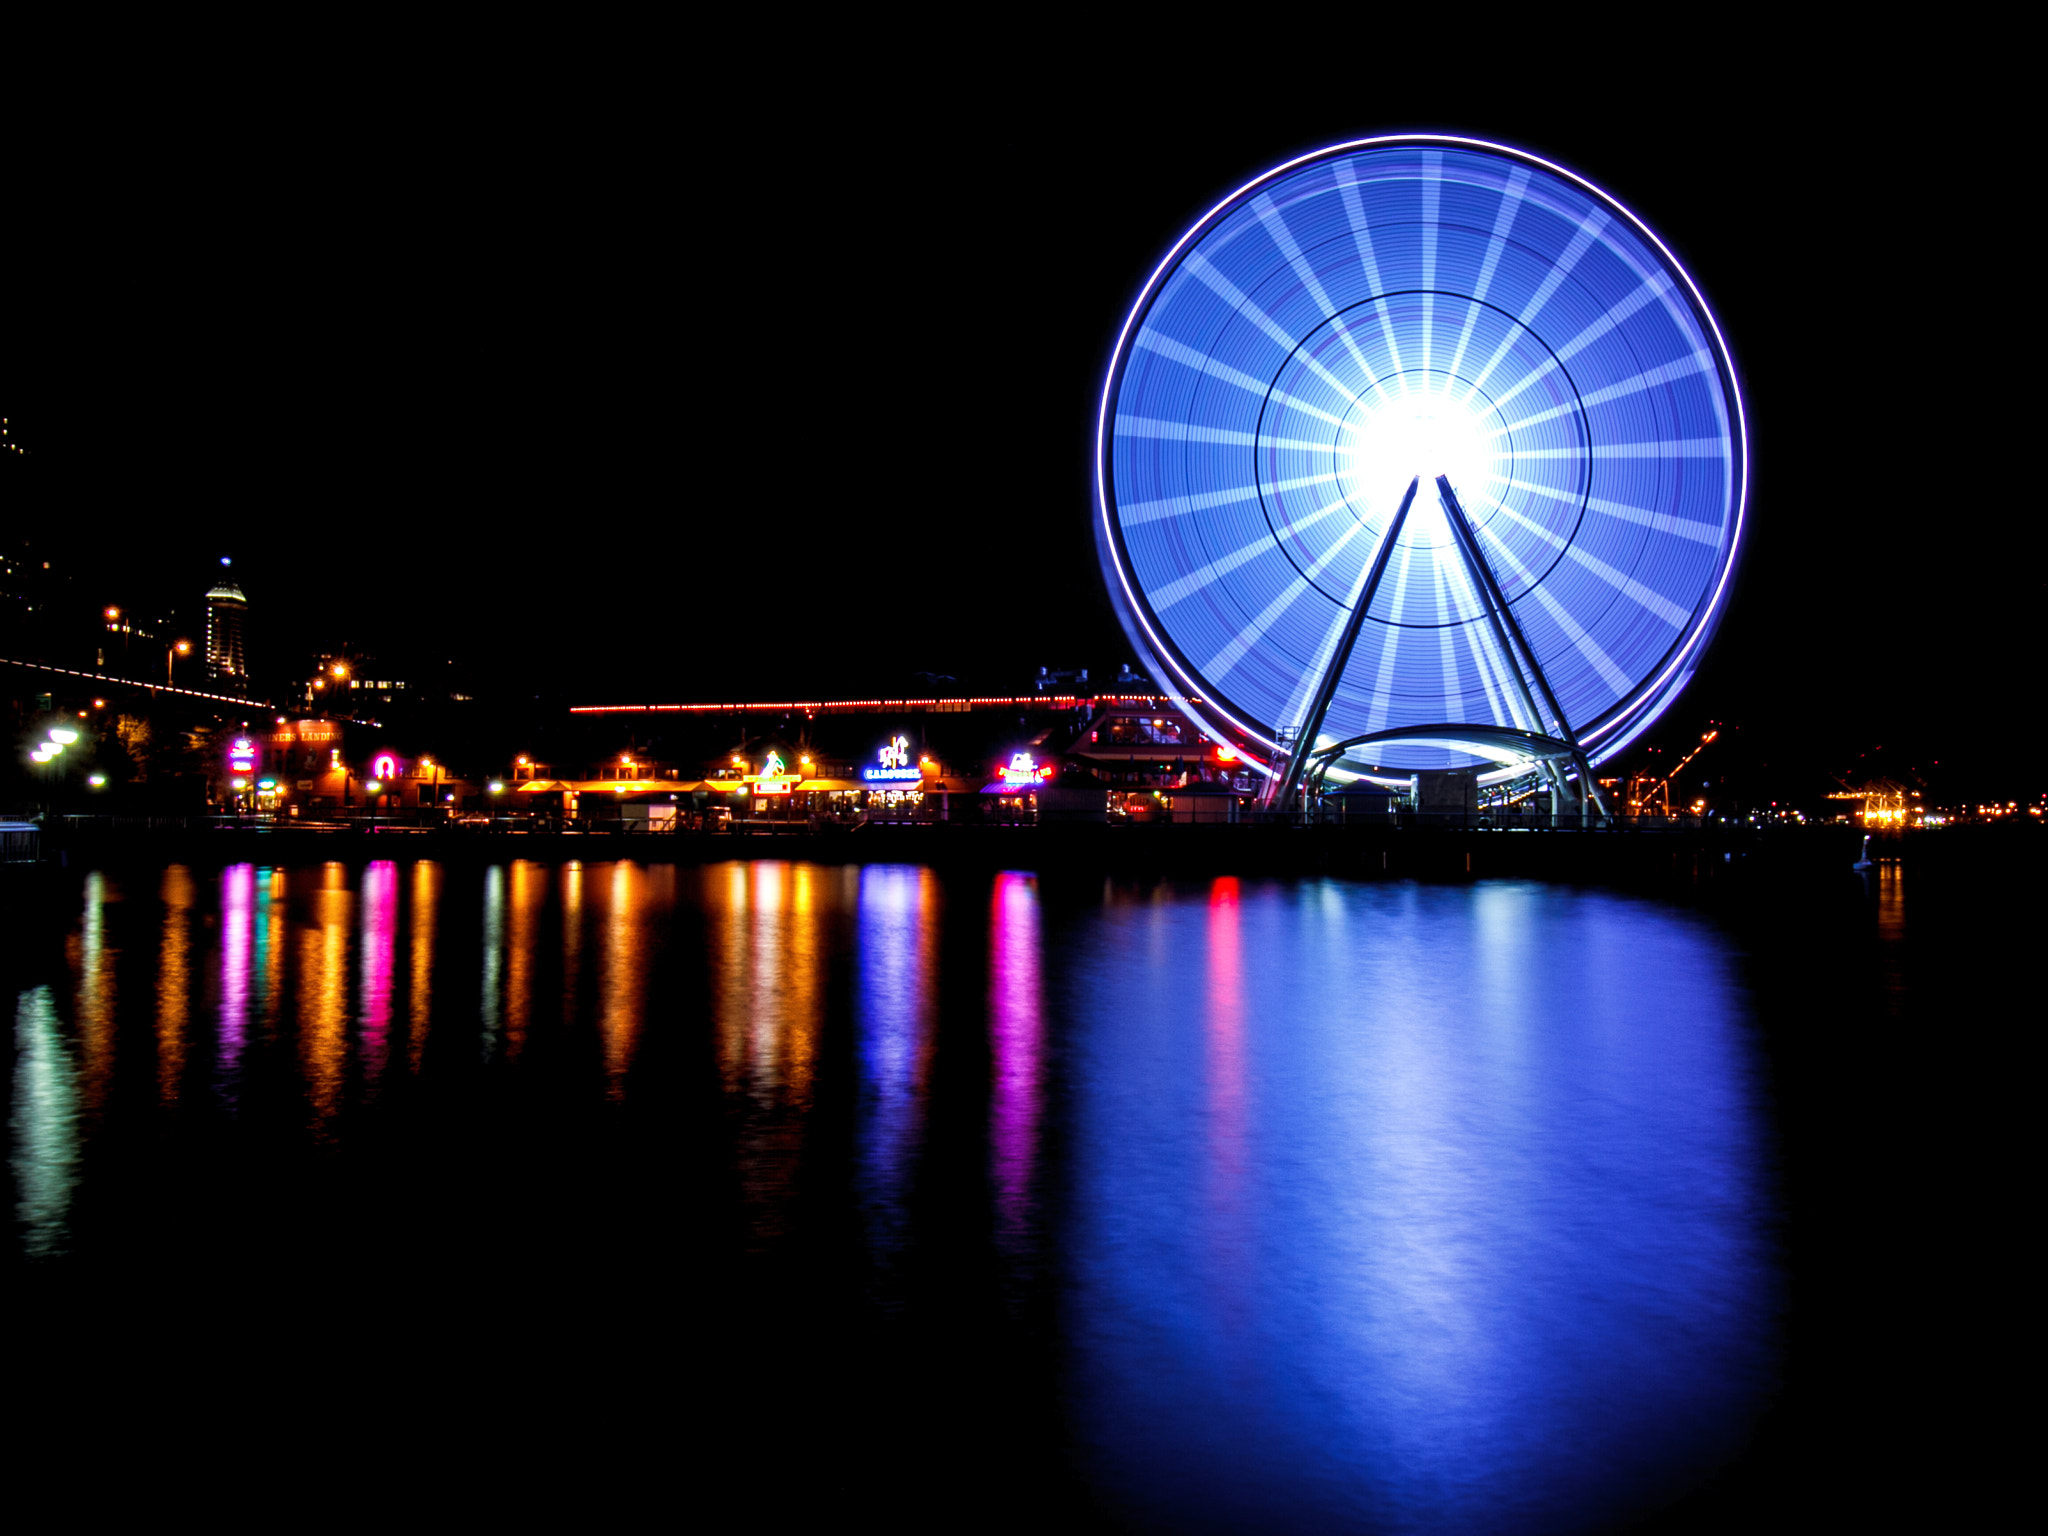 Photograph The Great Wheel at Night by Jason Groepper on 500px